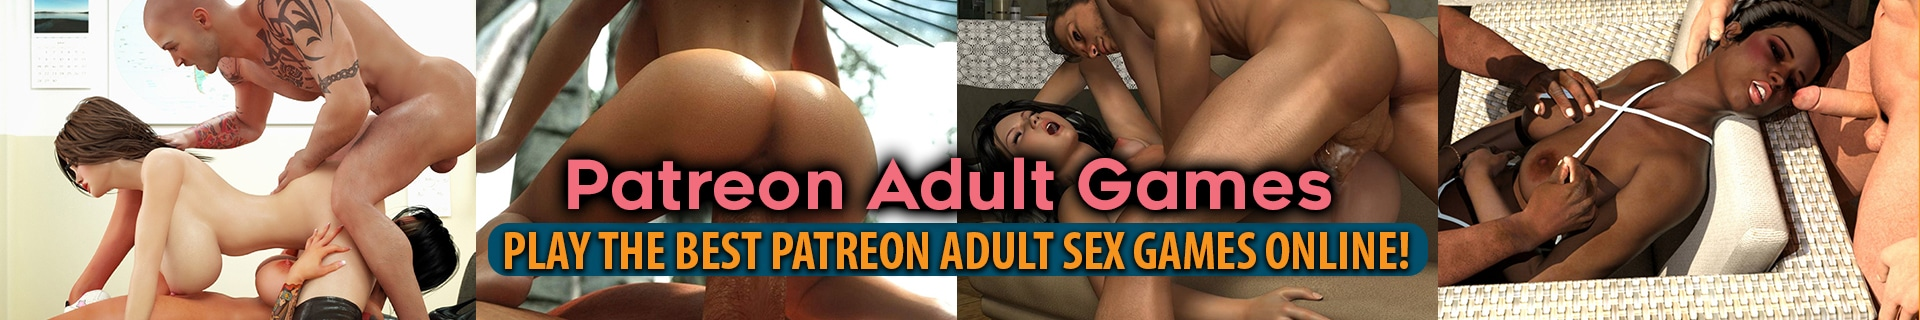 Adult Game Online